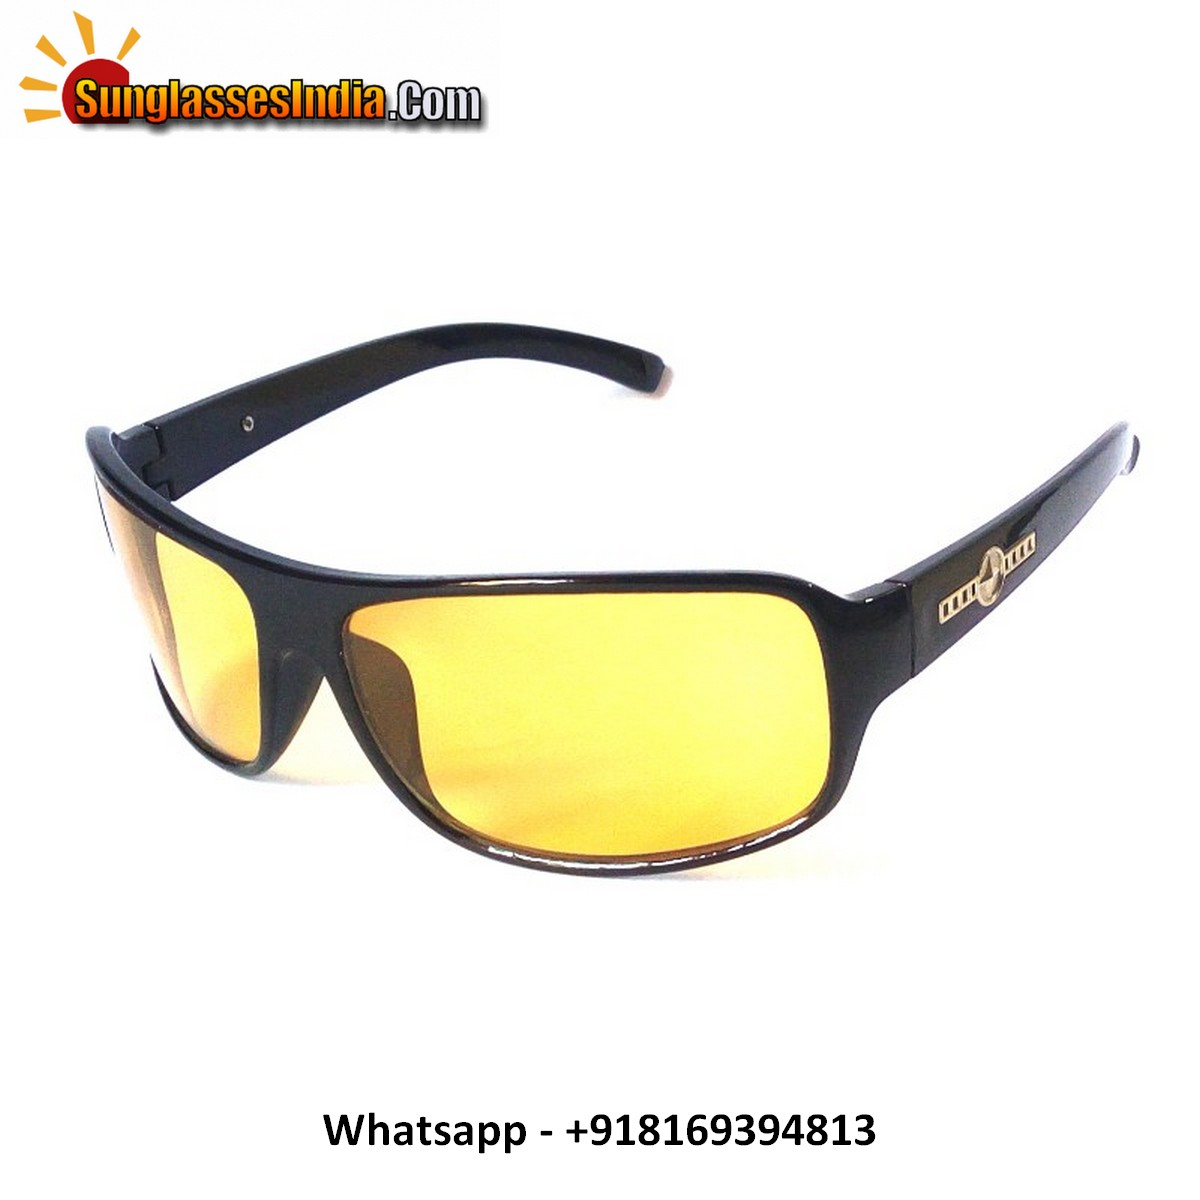 Night Driving Sunglasses for Large Face KS2122Ylw